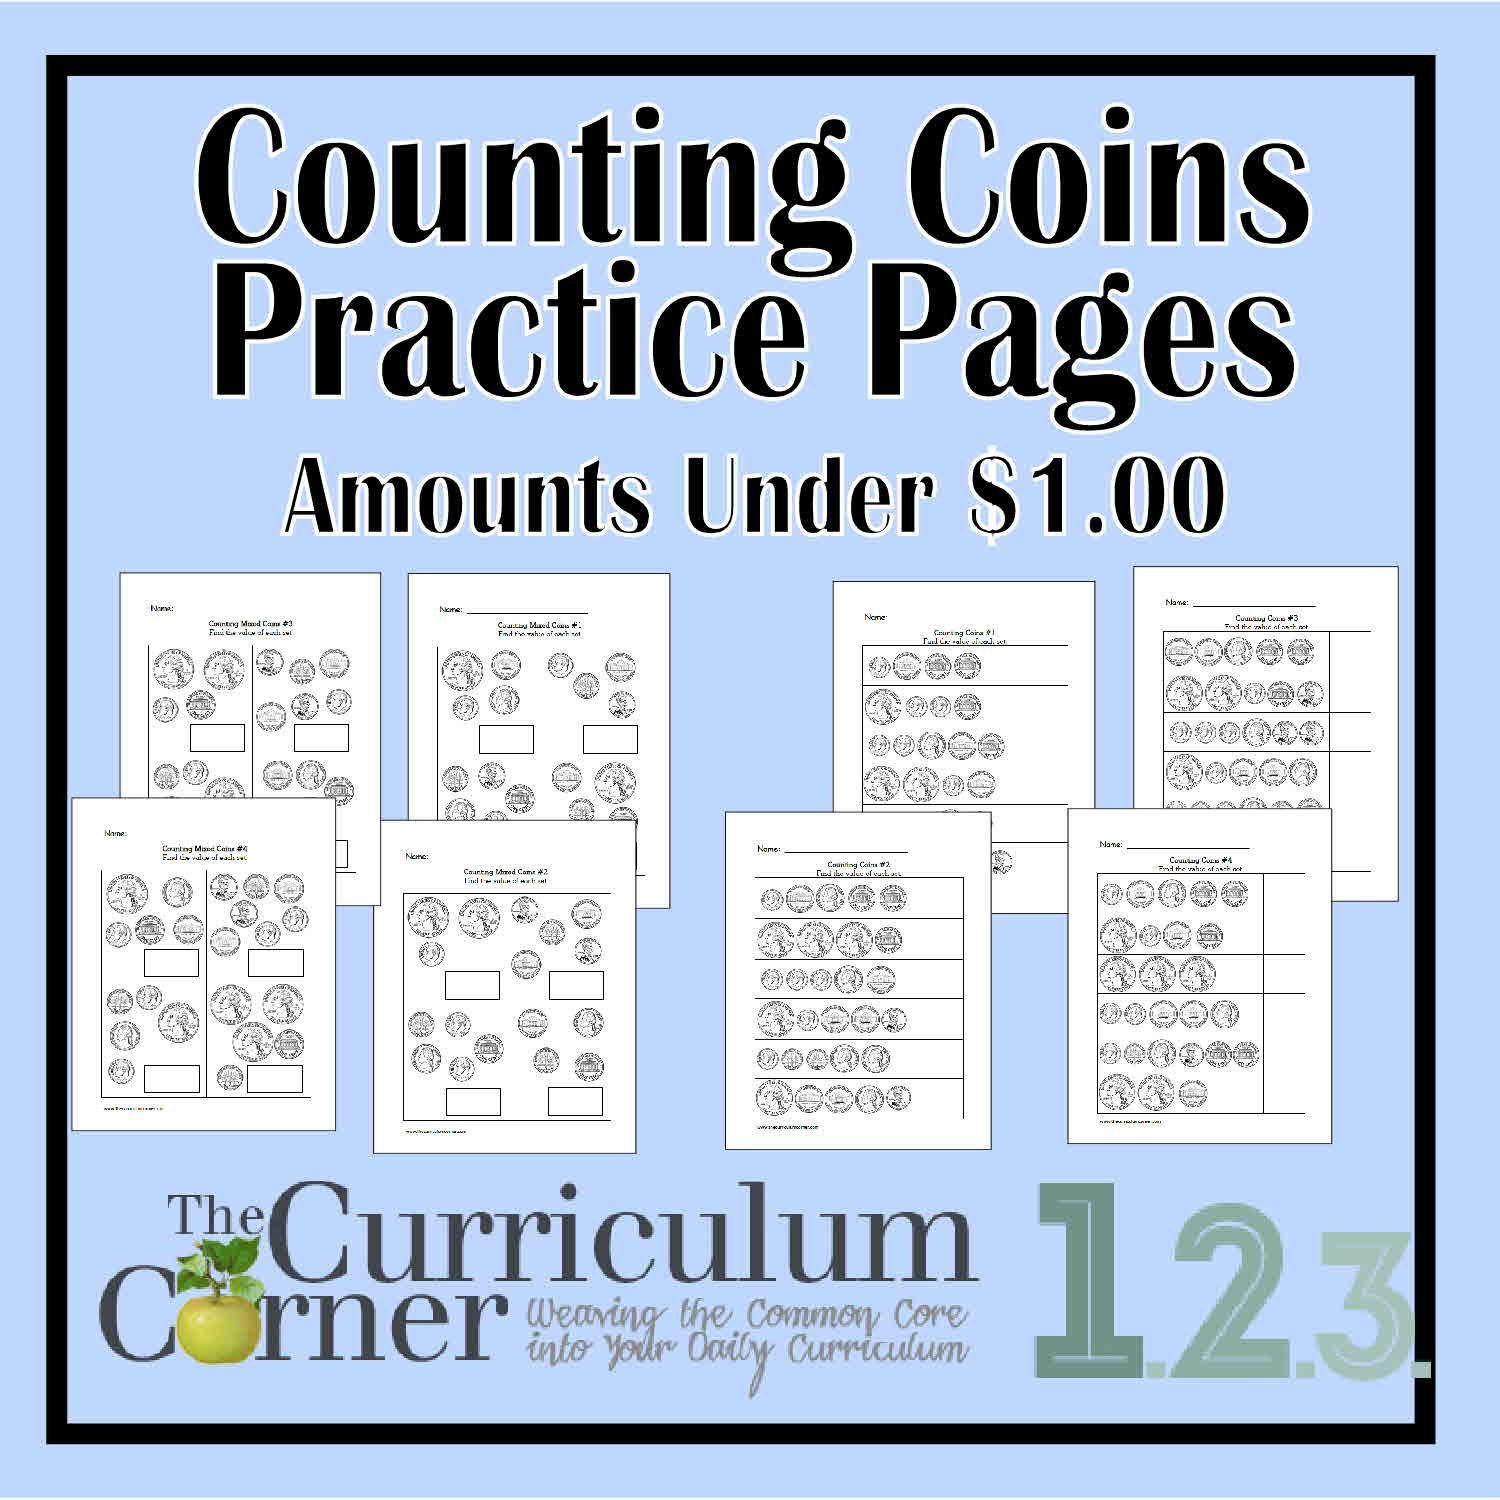 Counting Coins Practice Pages